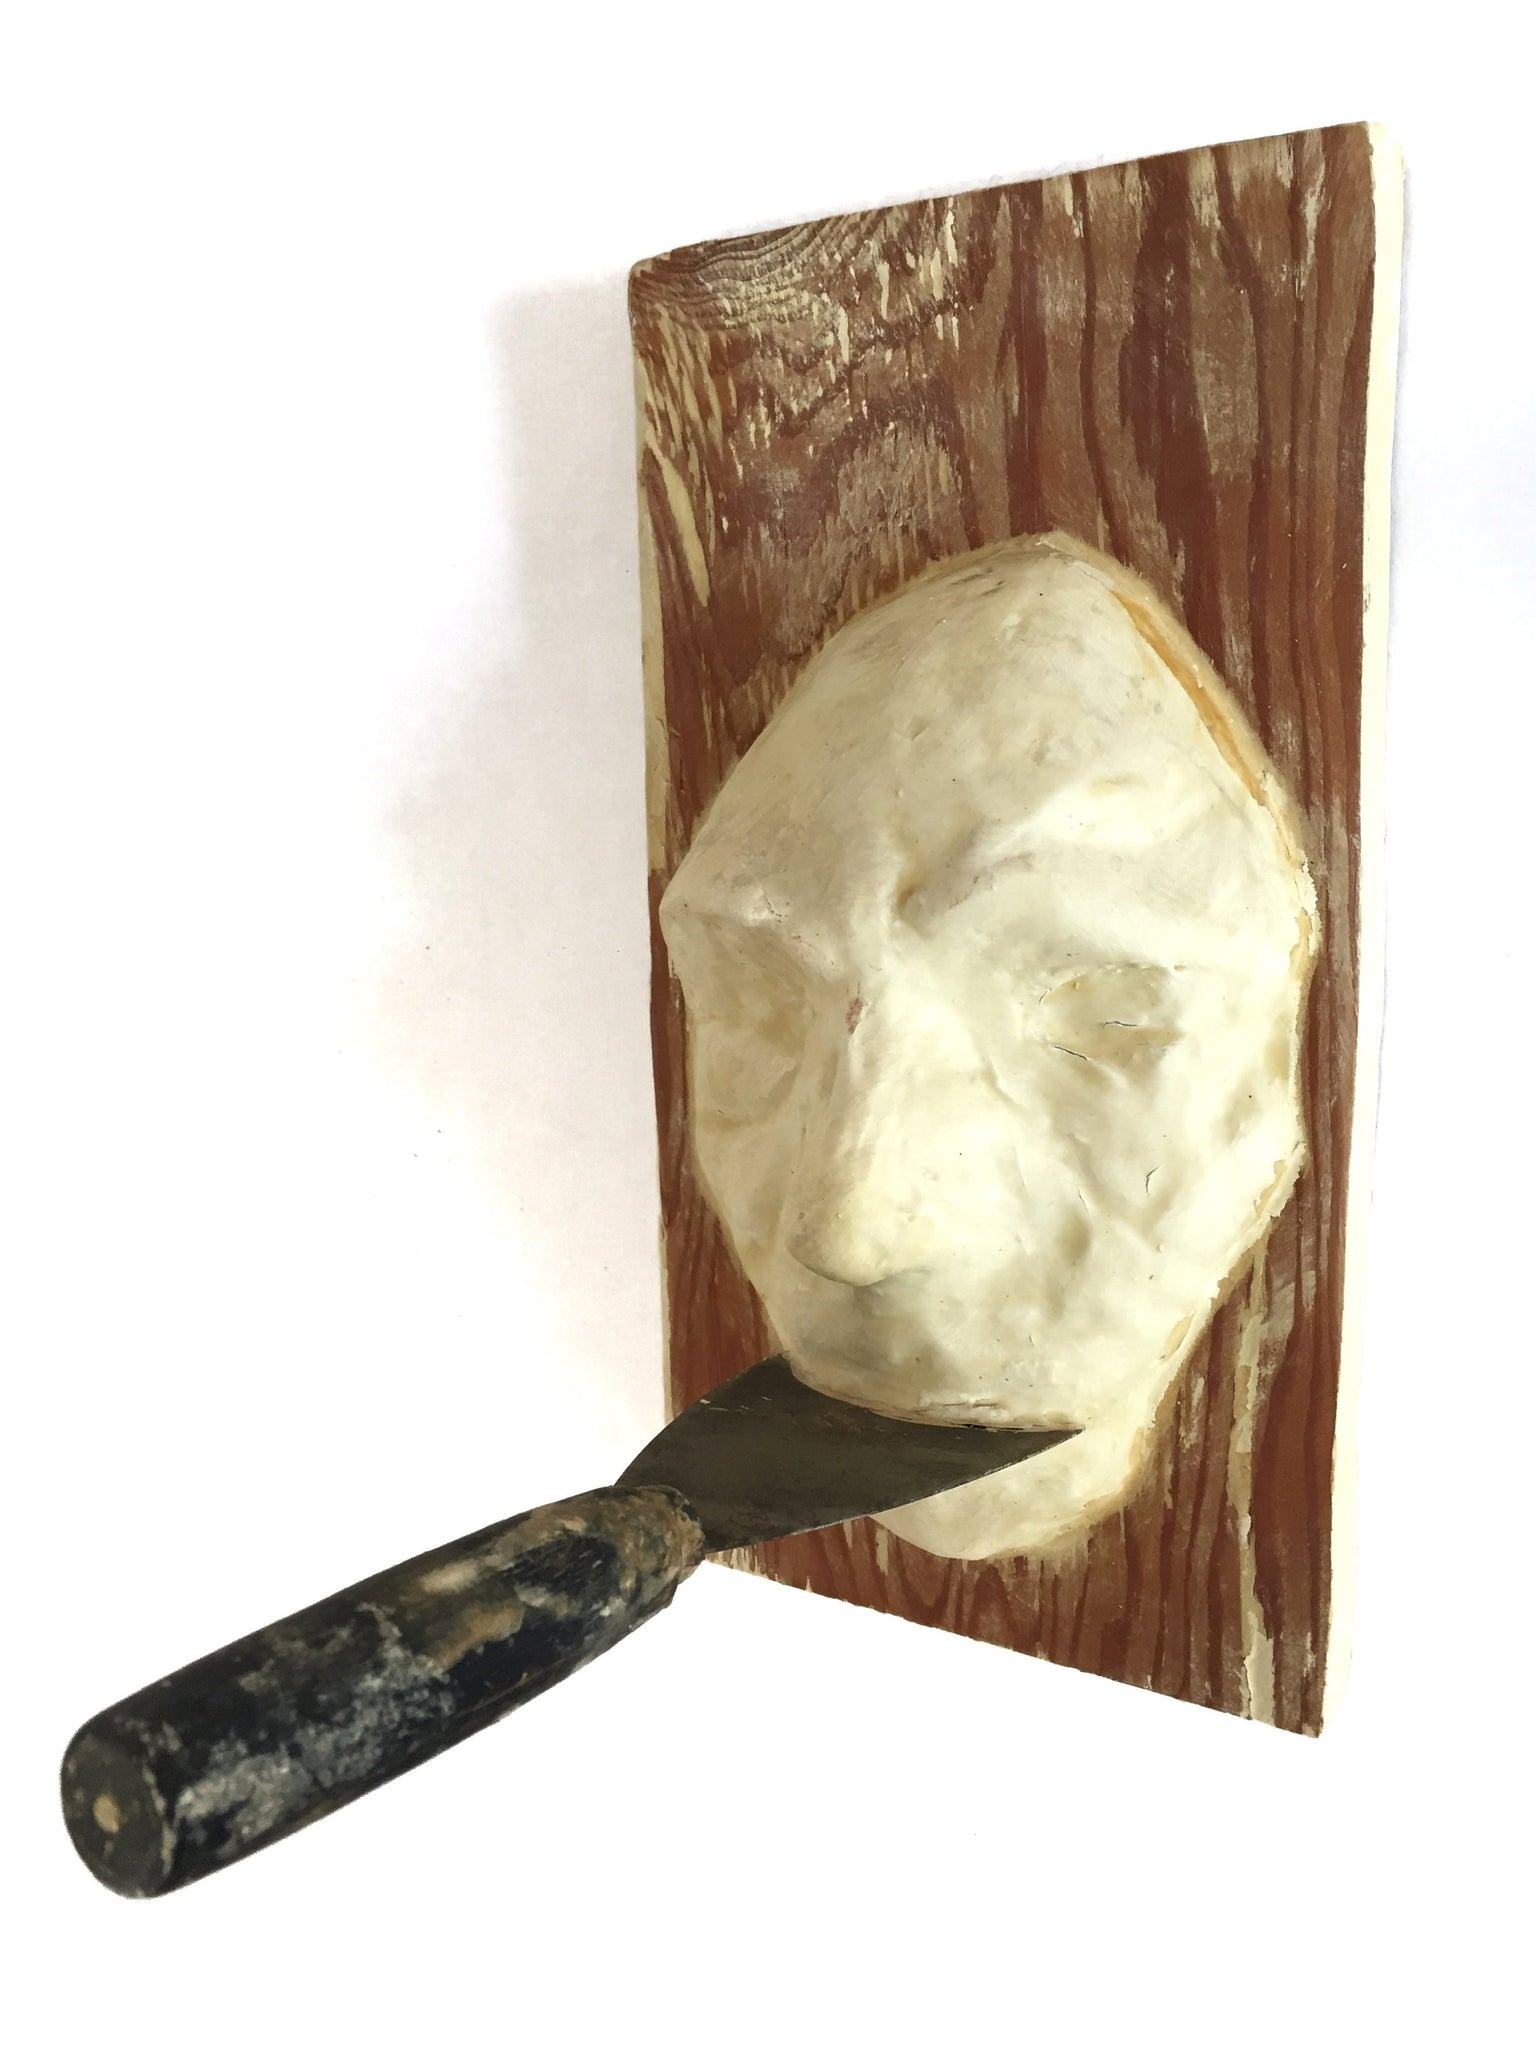 Mask with putty knife by Tyler James Hoare